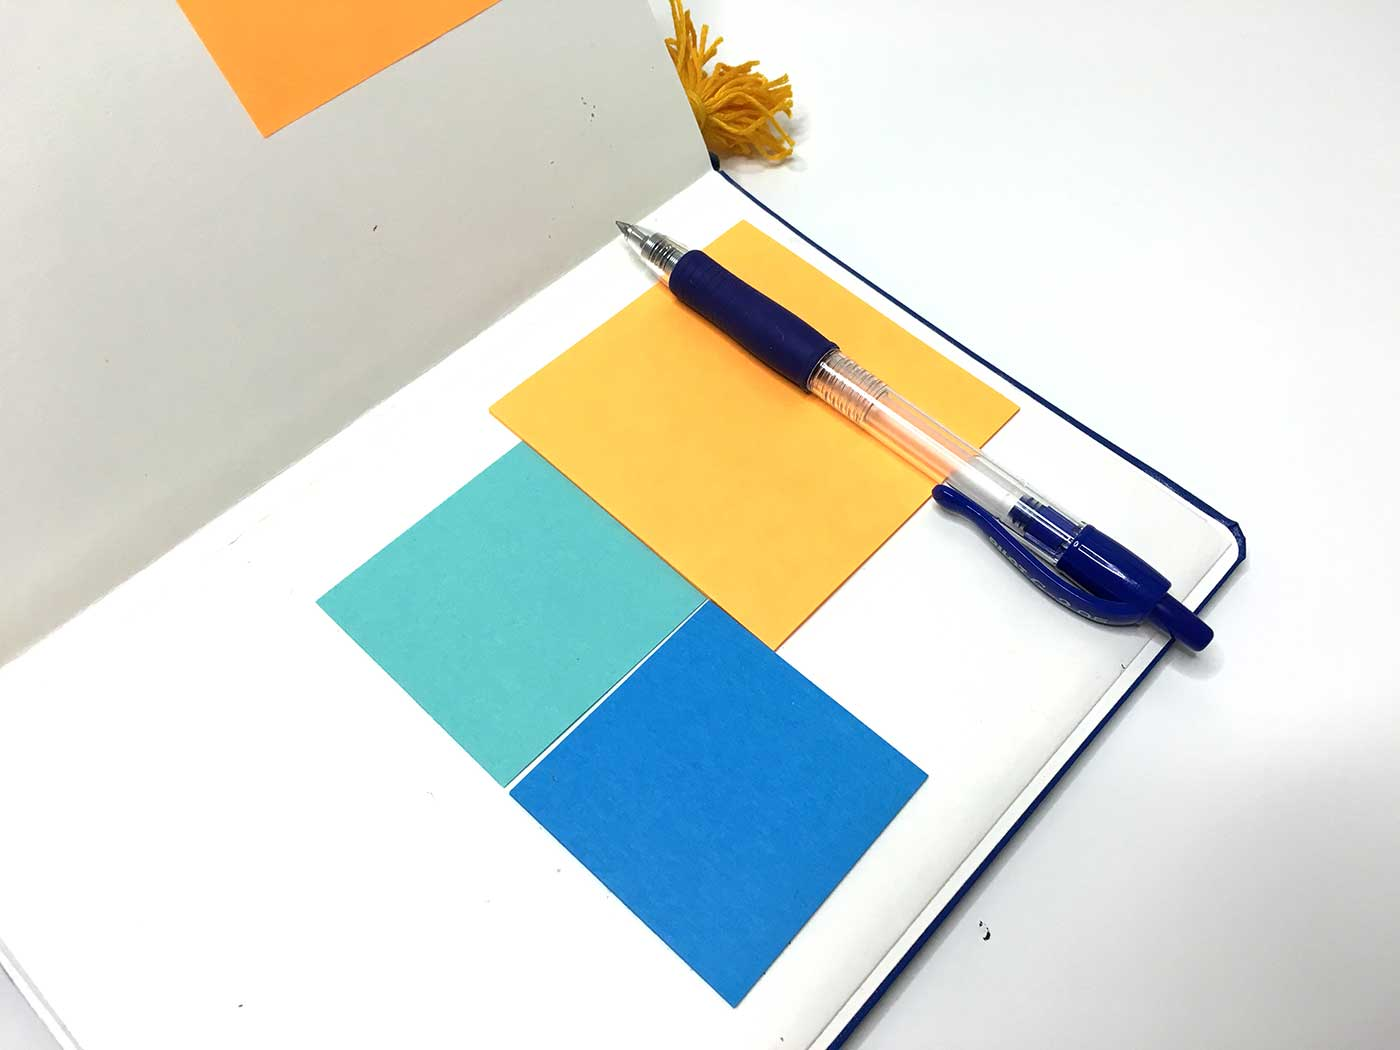 Short stacks of post it notes are a great way to travel with extra paper without having to pack more